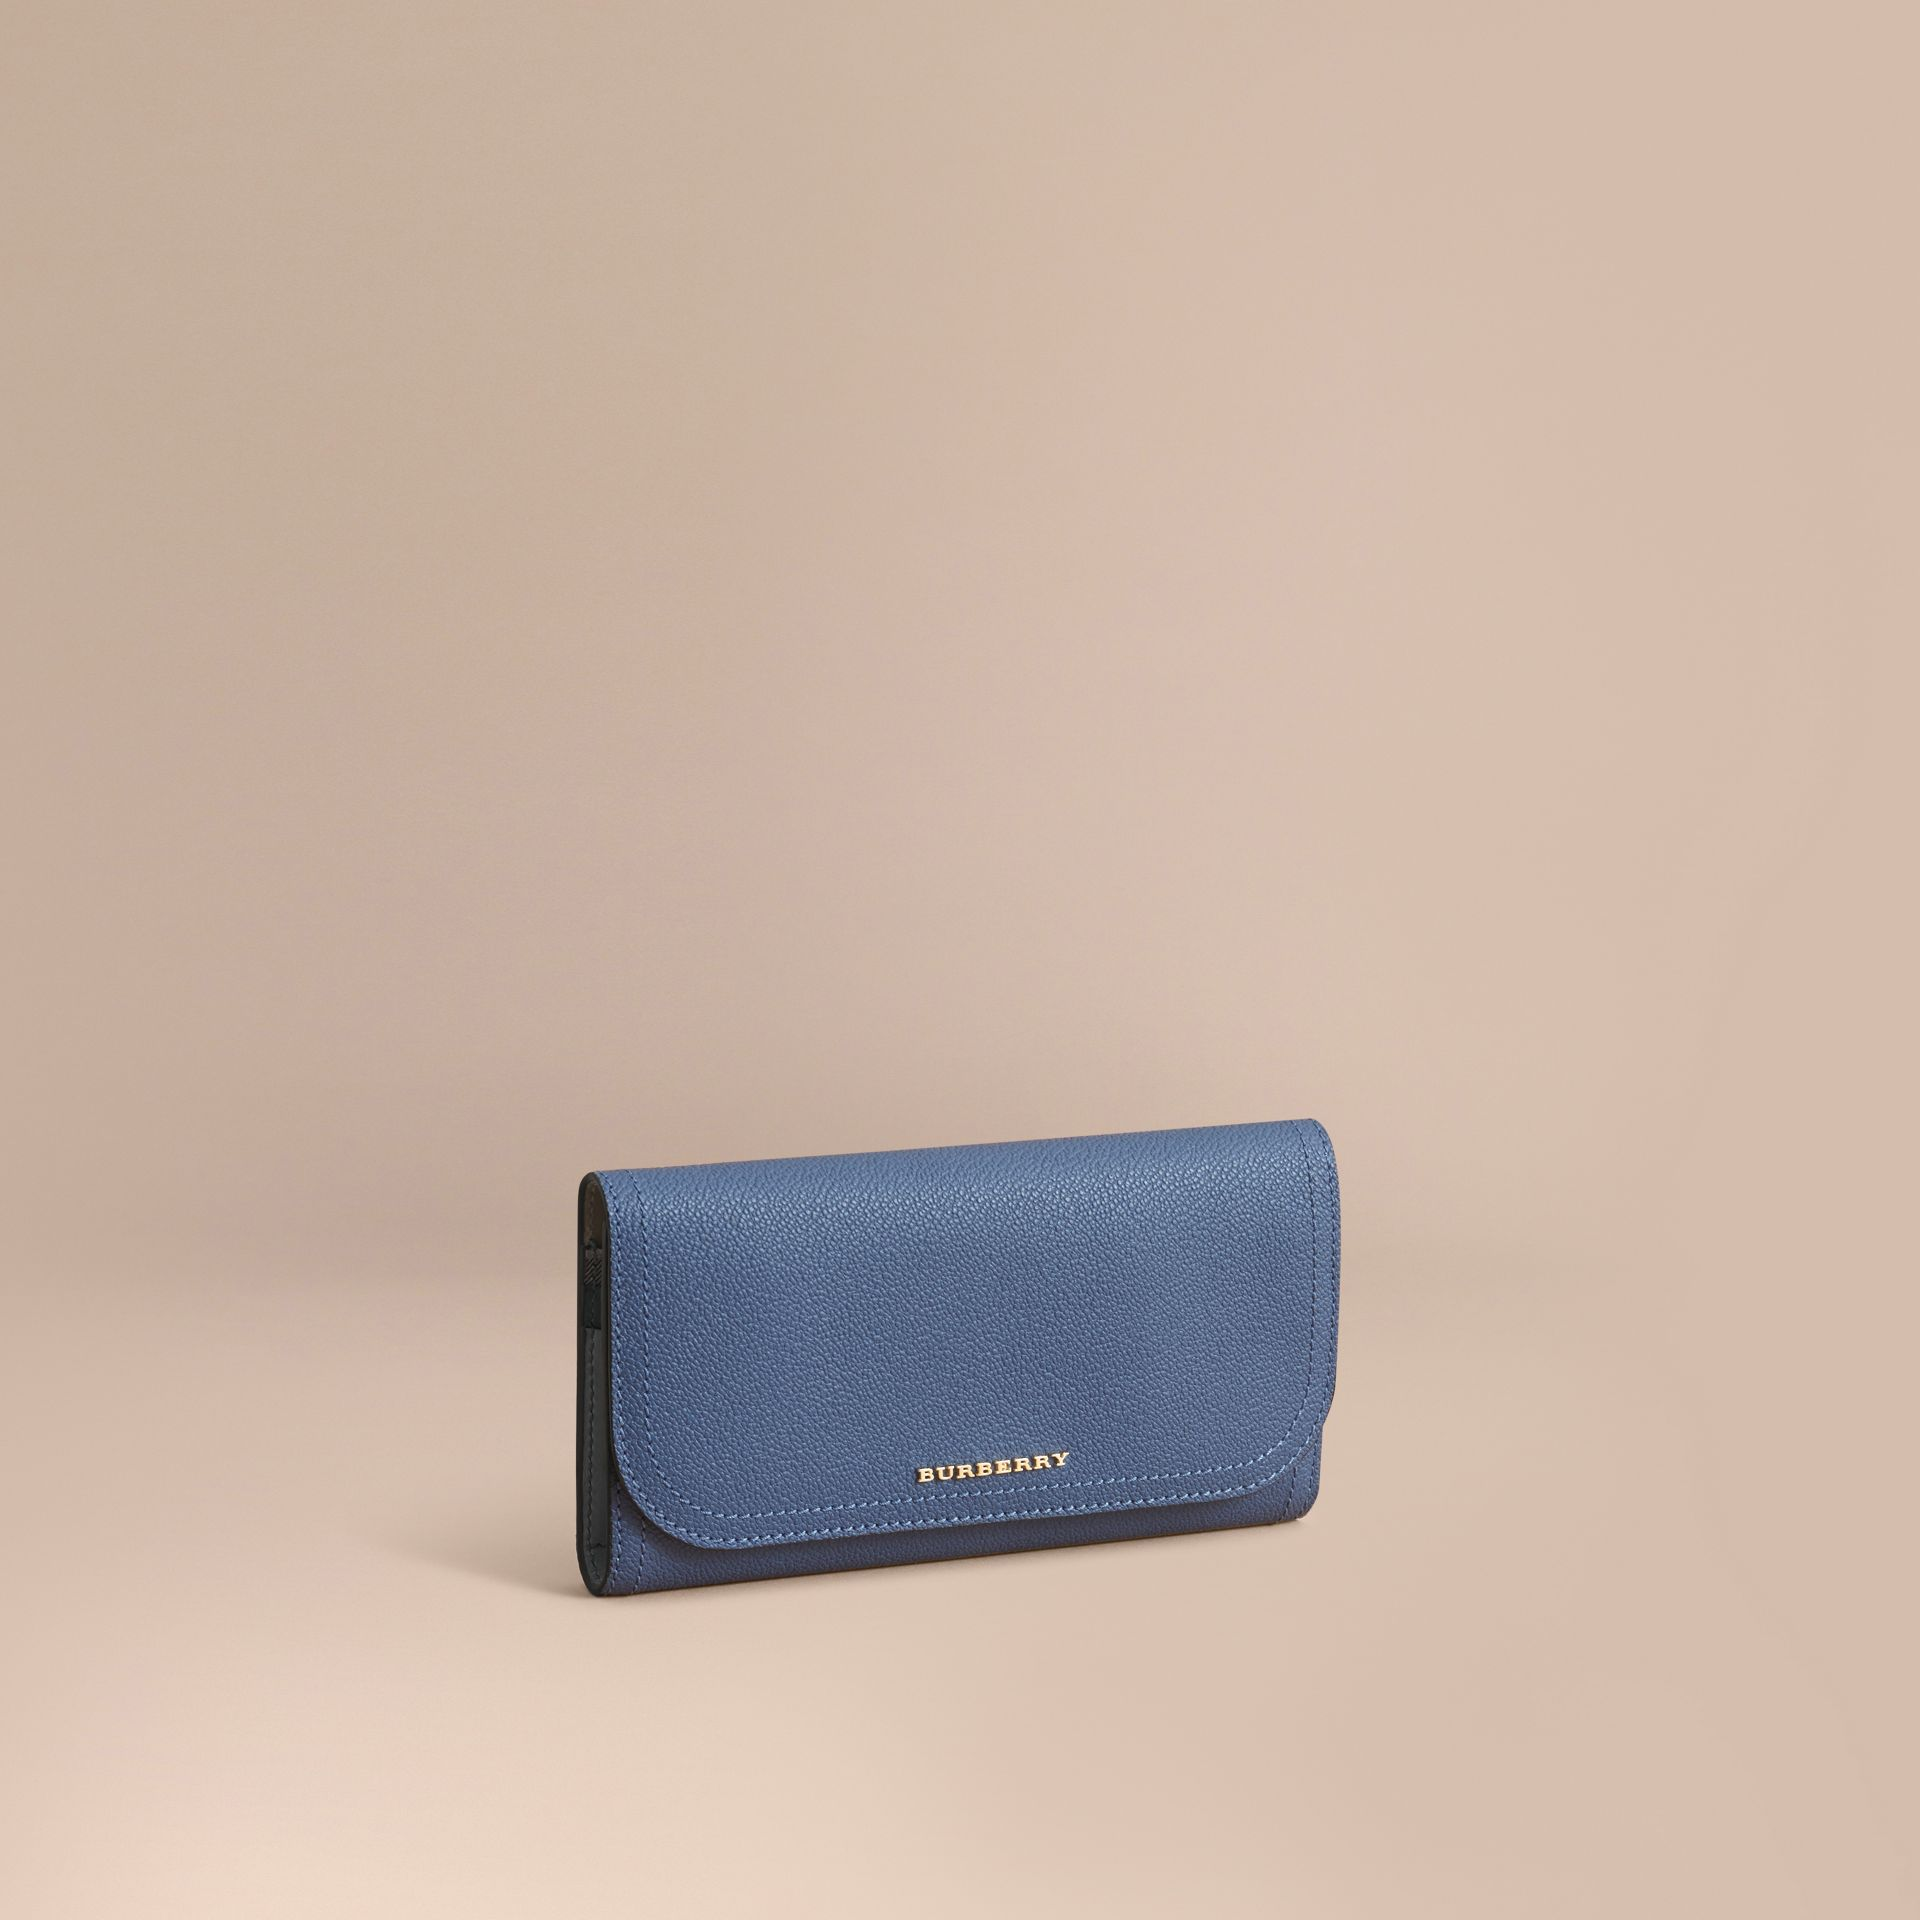 Two-tone Leather Continental Wallet and Coin Case in Steel Blue/multi - Women | Burberry - gallery image 1